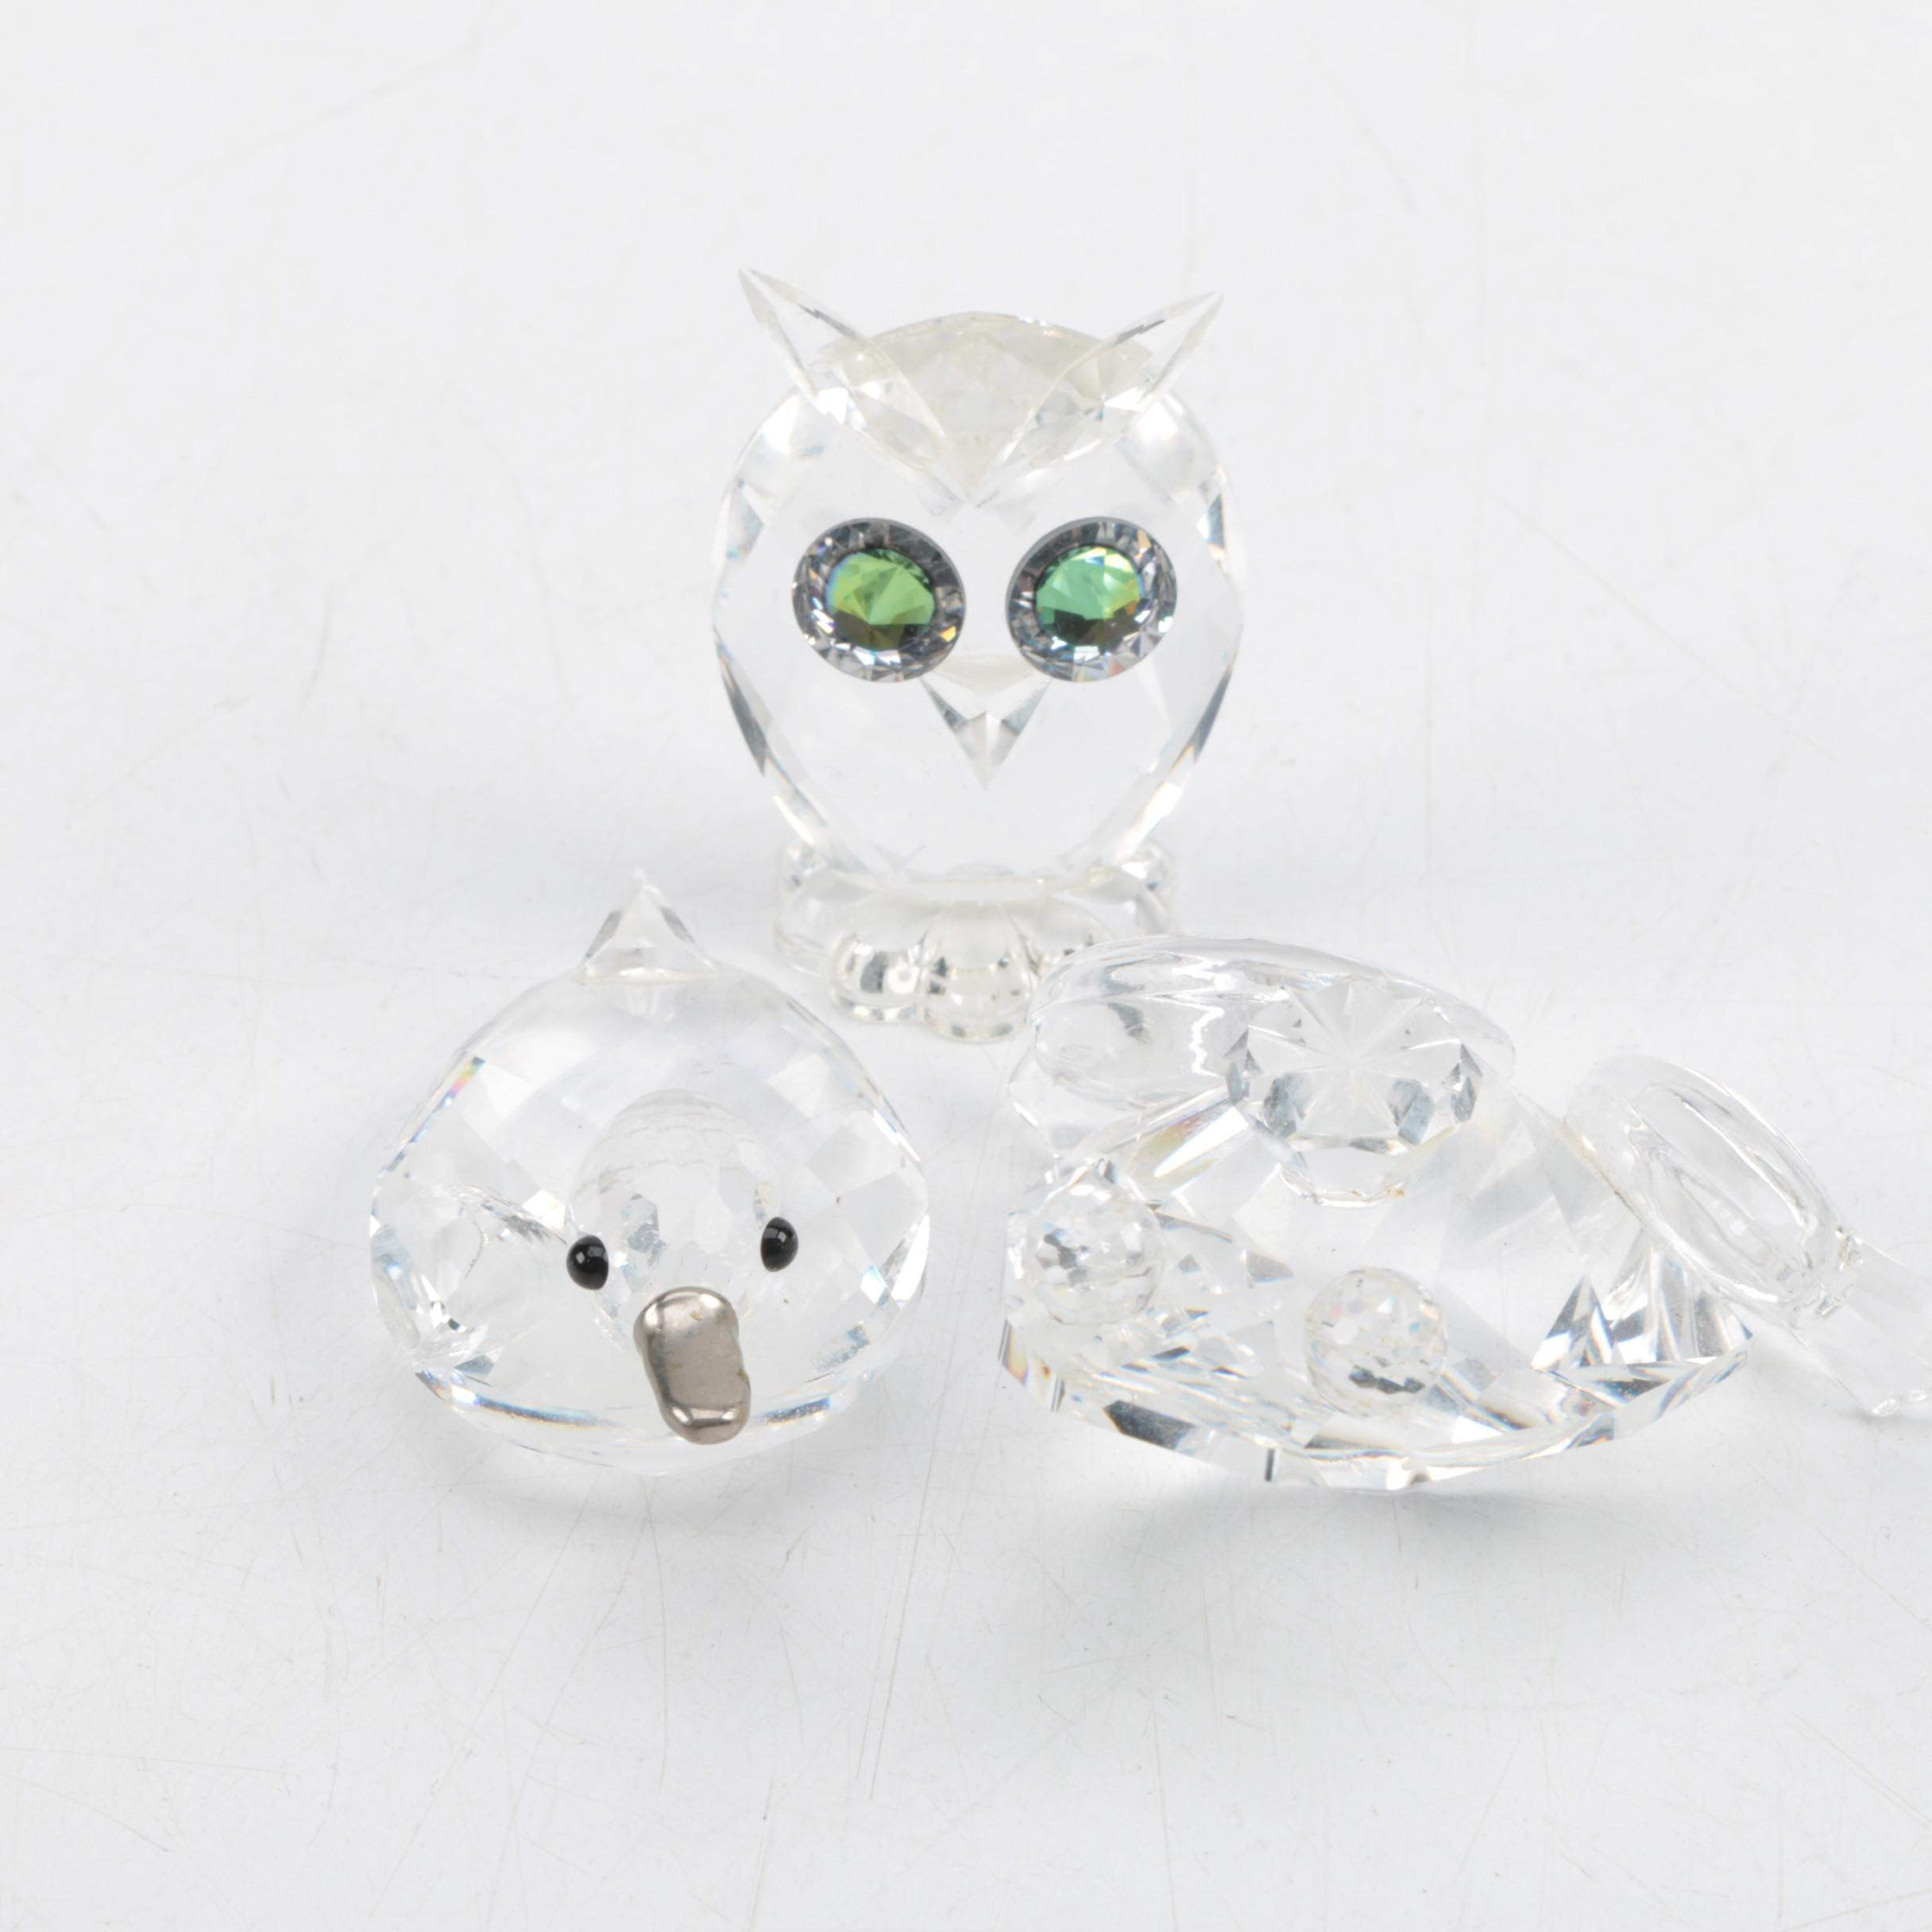 Swarovski Crystal Animal Figurines Featuring Frog Prince